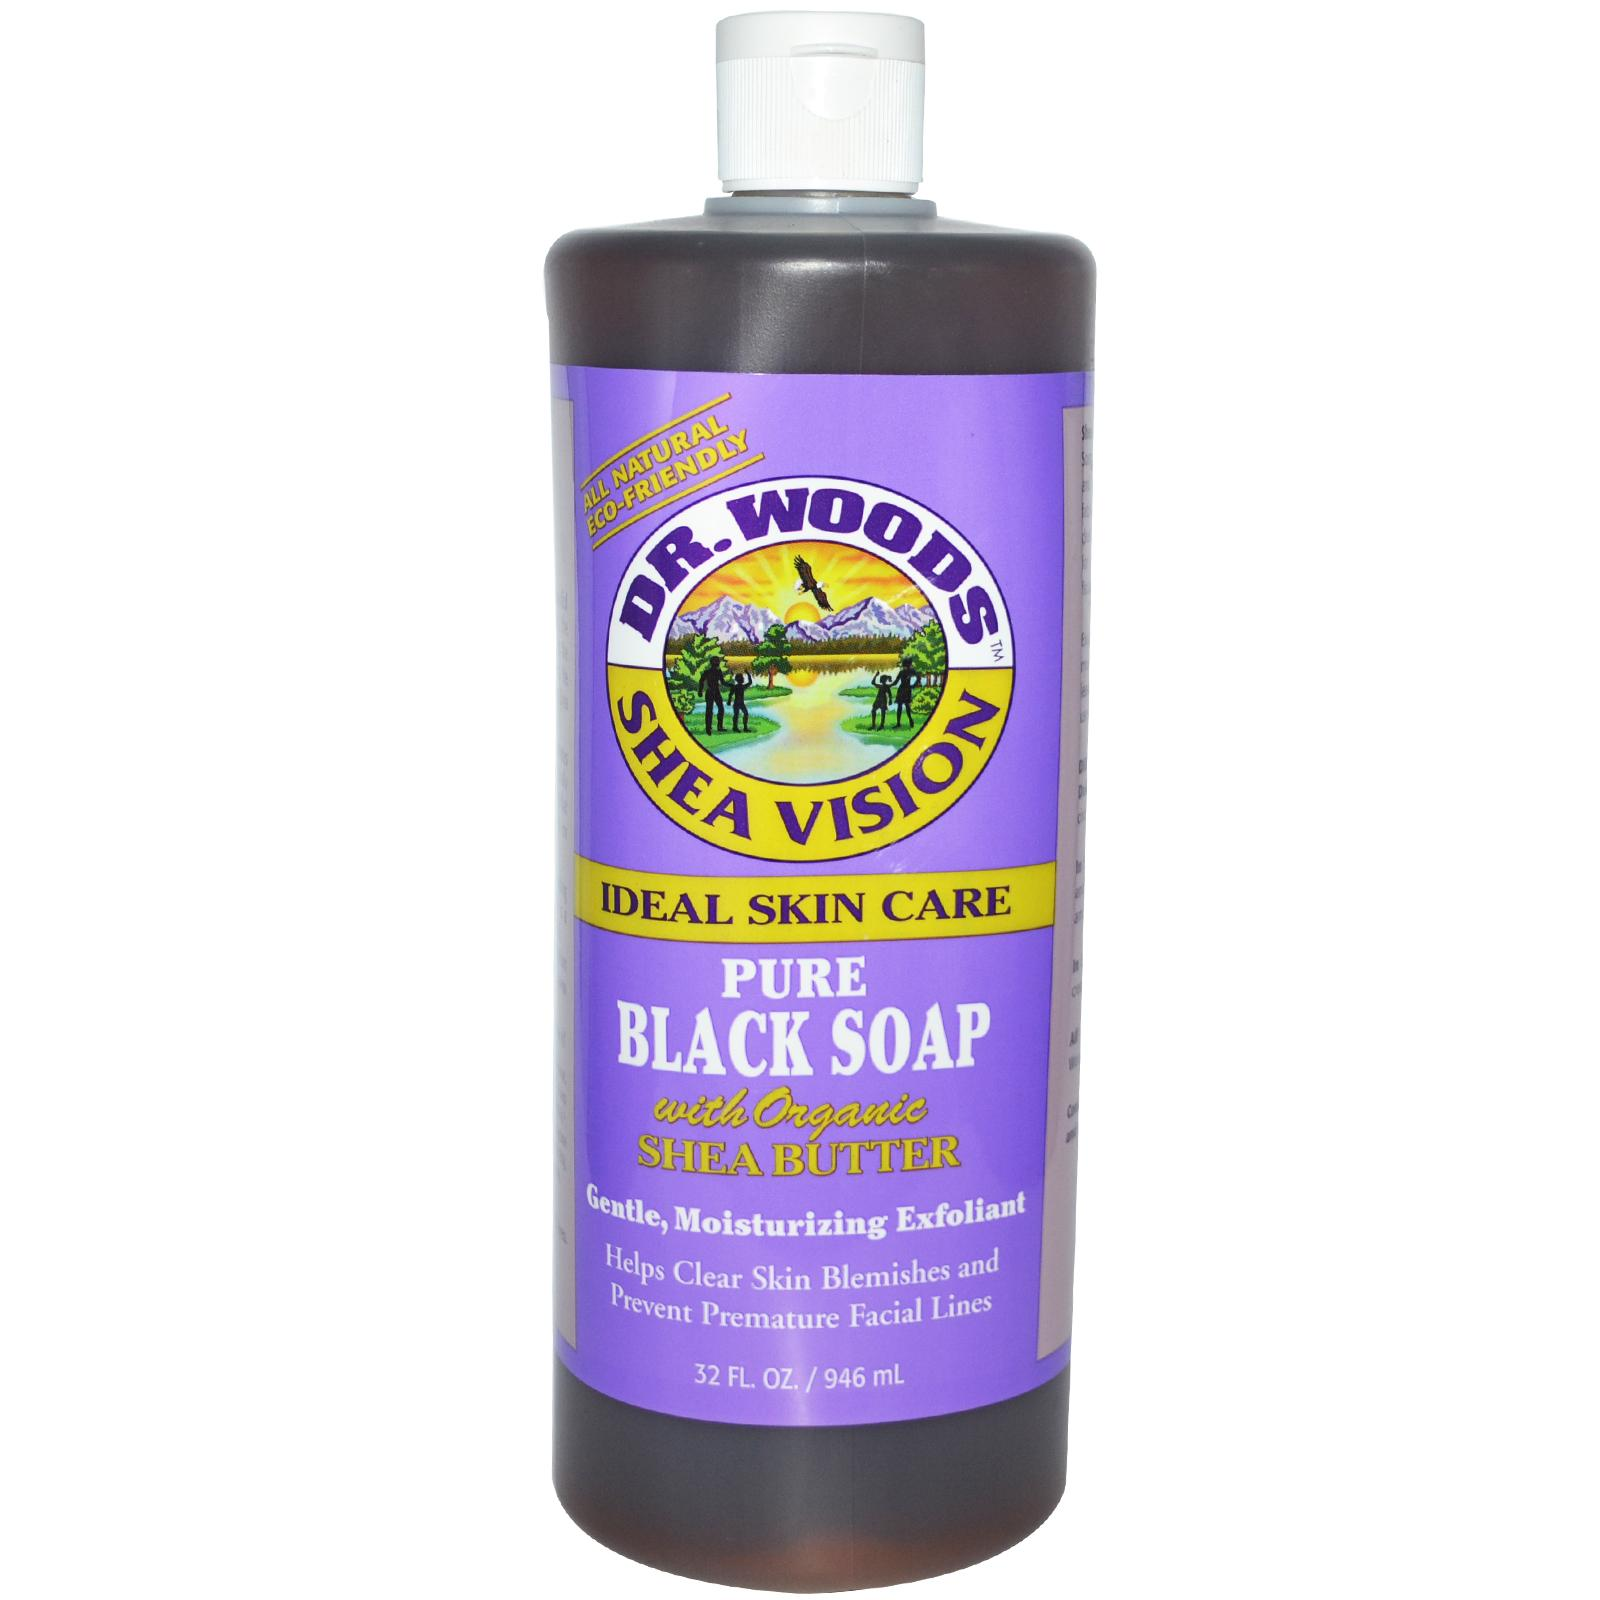 The Second Thought Dr Woods Shea Vision Pure Black Soap